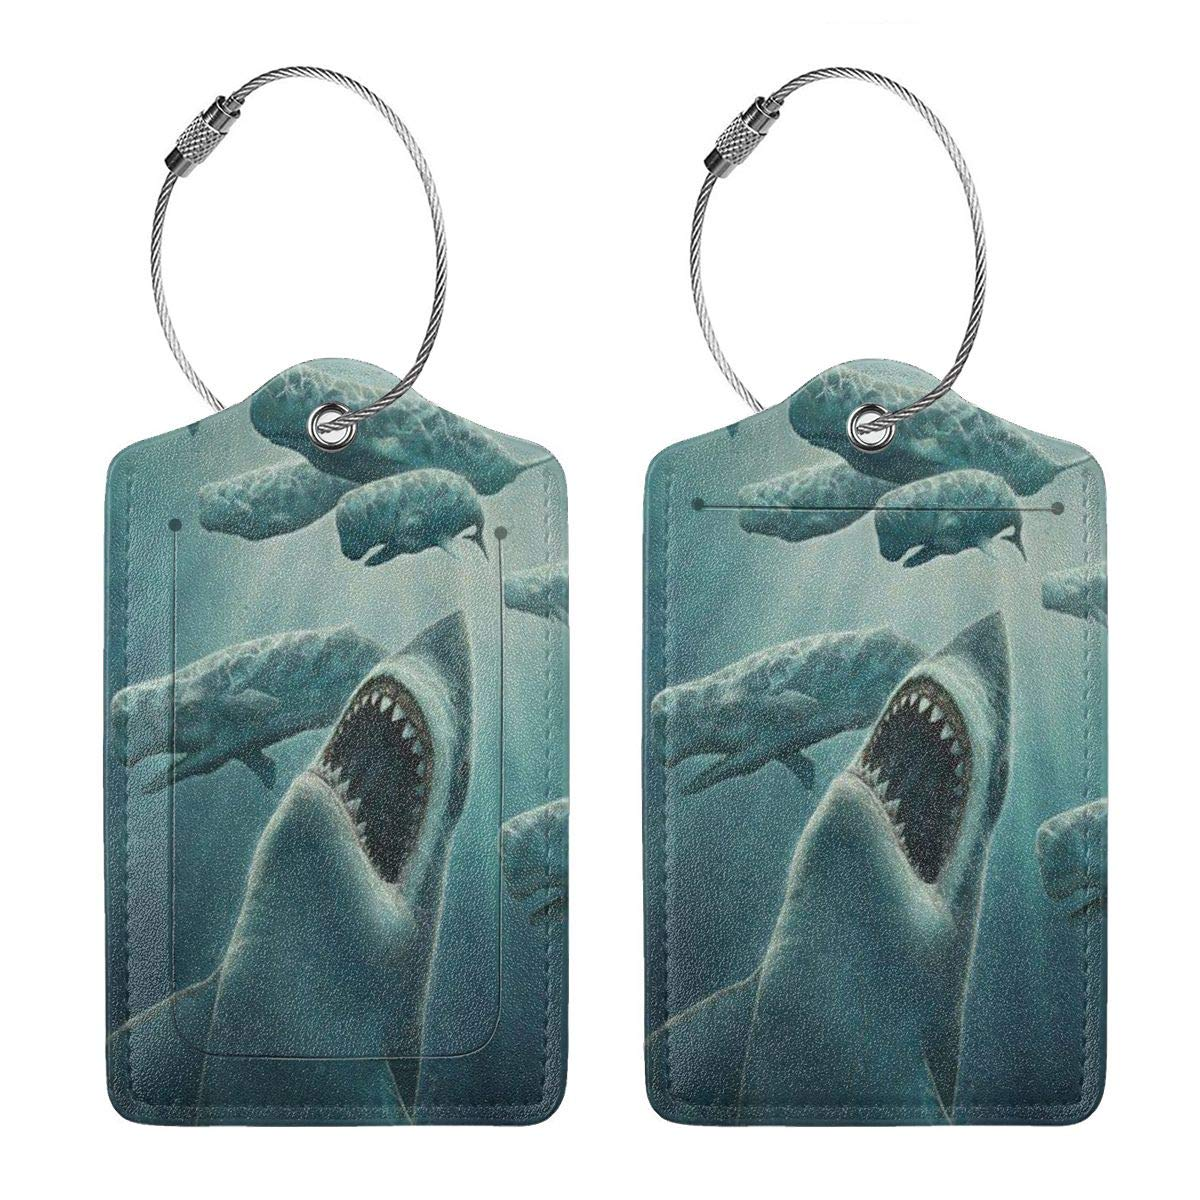 GoldK Beast Animal Shark Jaws Leather Luggage Tags Baggage Bag Instrument Tag Travel Labels Accessories with Privacy Cover